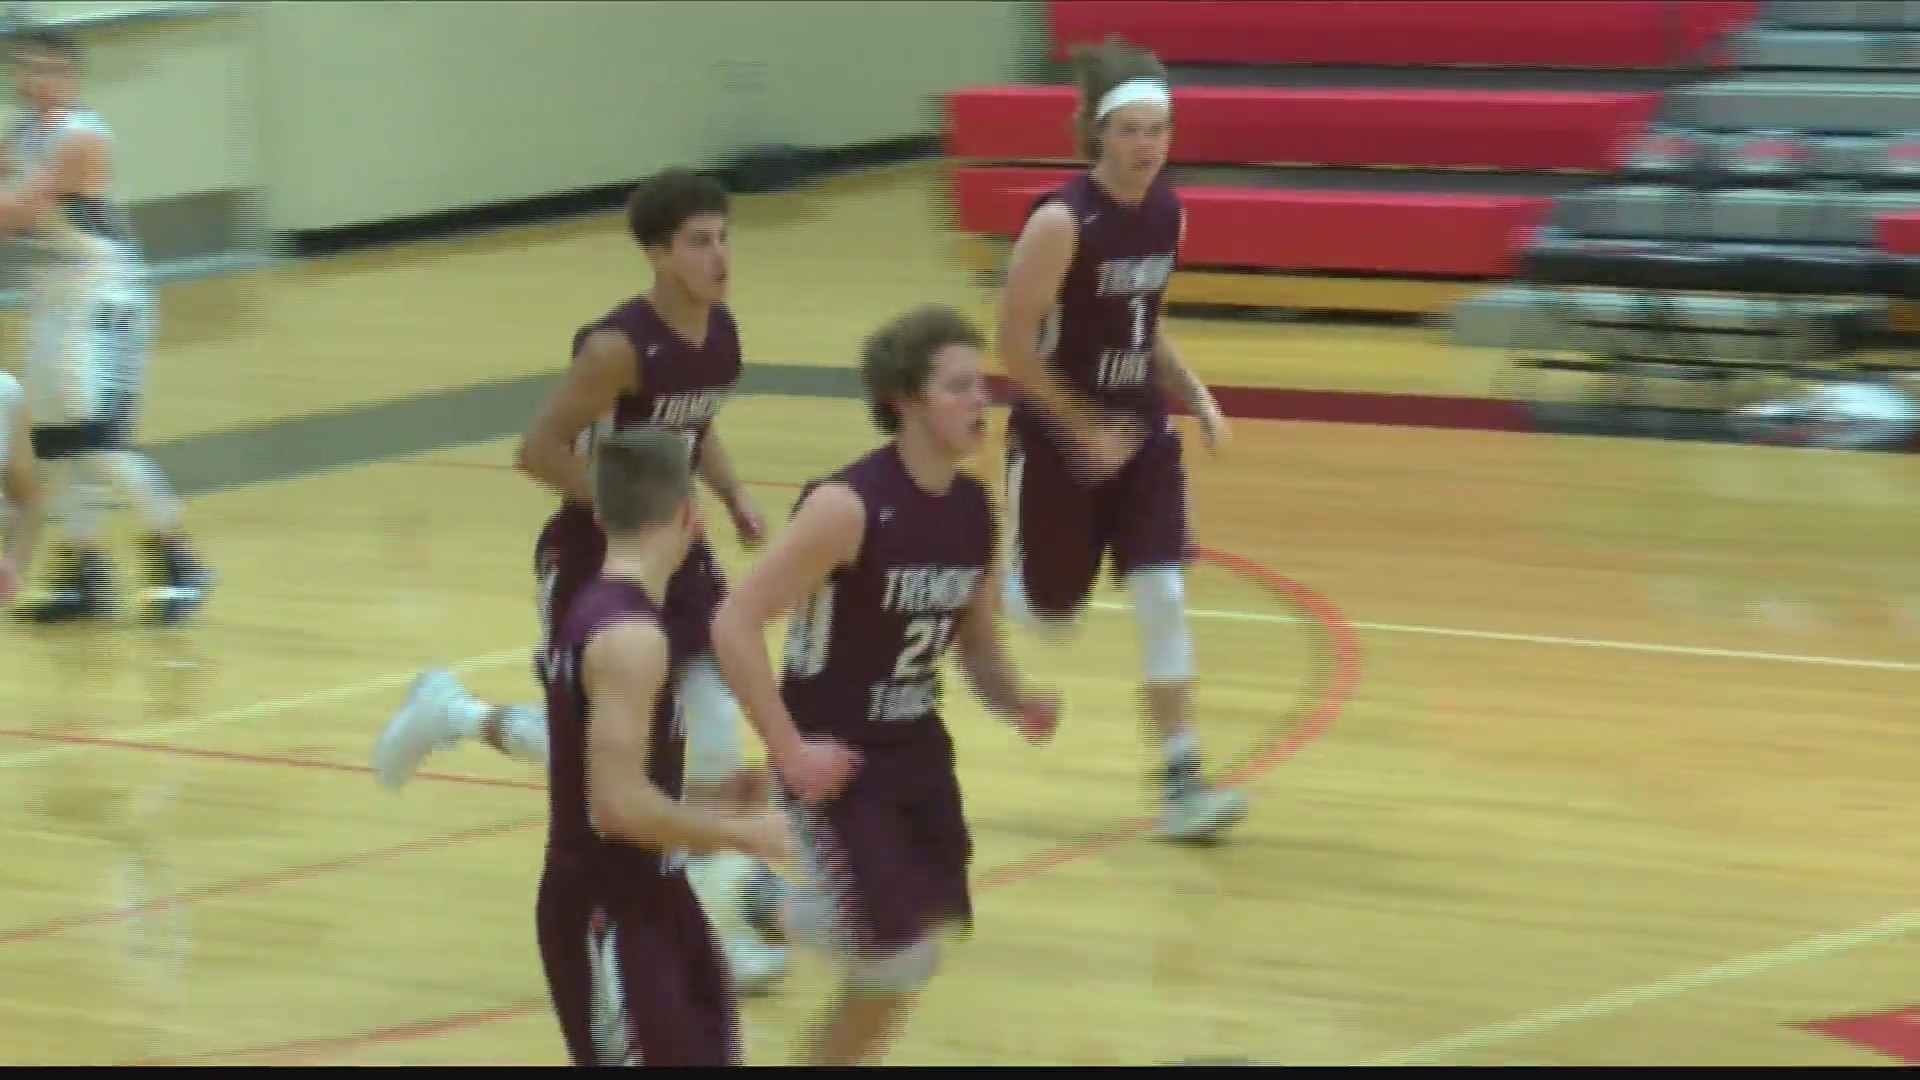 Tremont_Basketball_Package_0_20181204032853